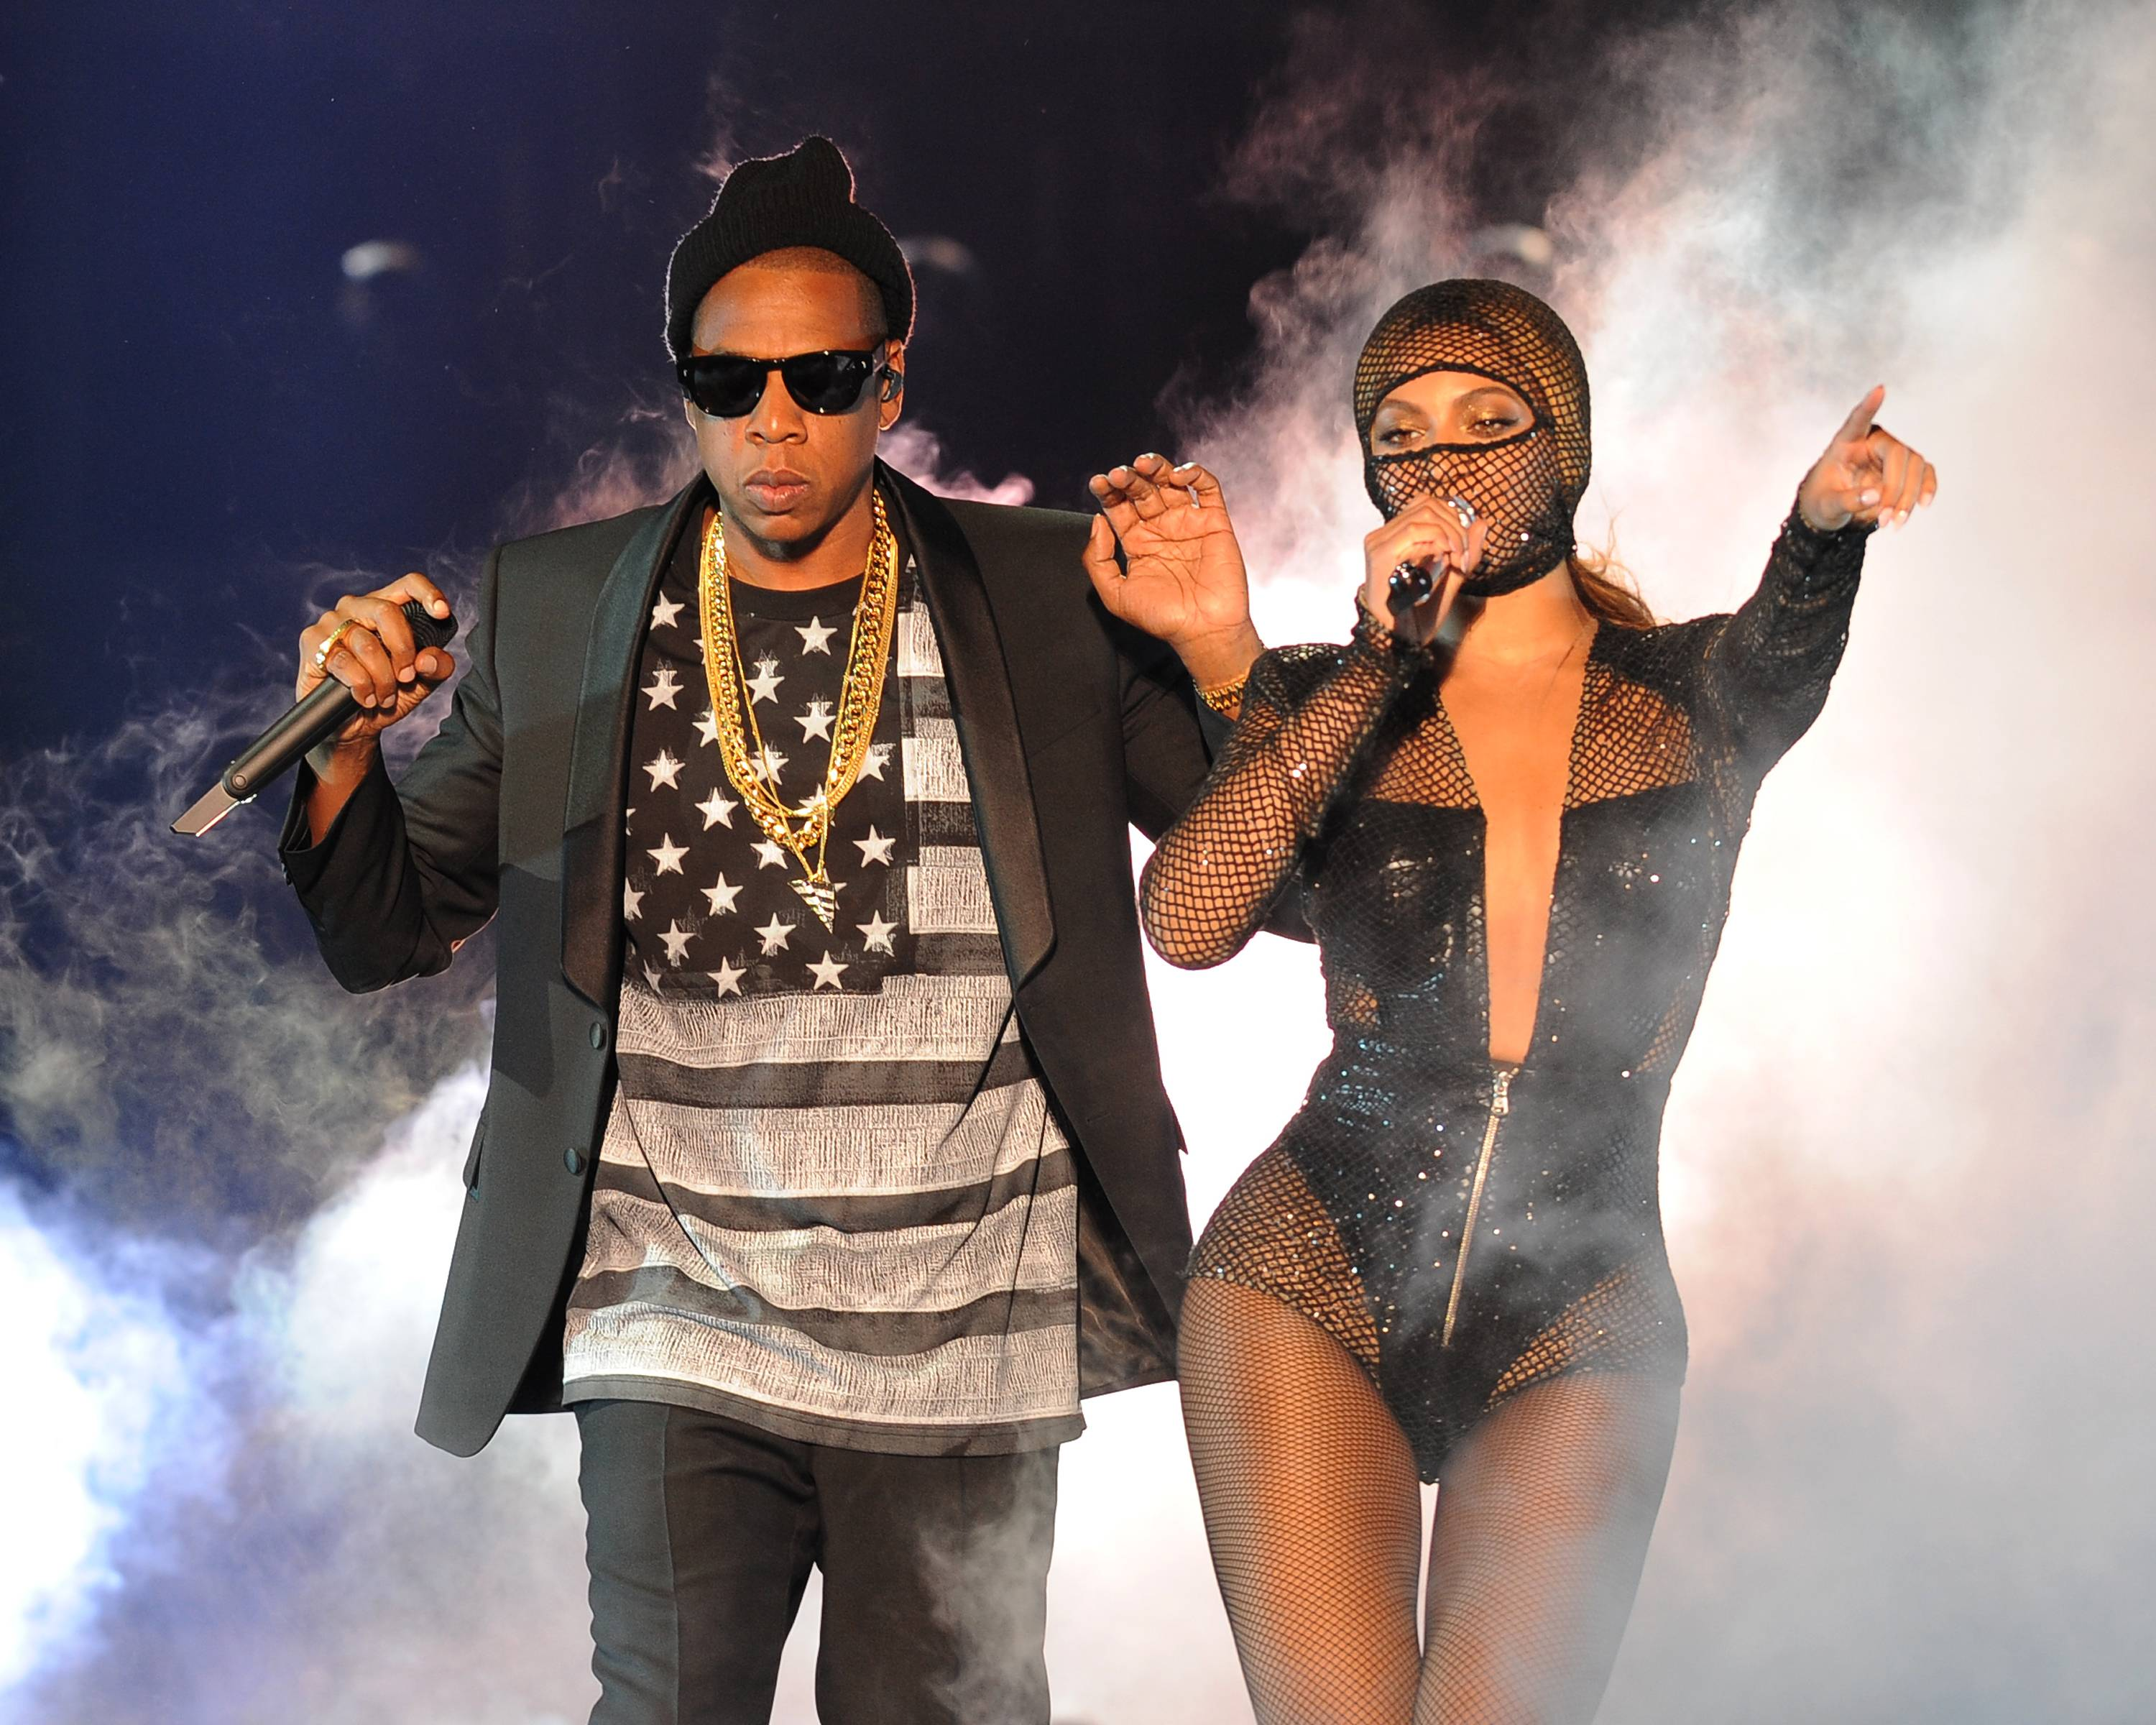 IMAGE DISTRIBUTED FOR PARKWOOD ENTERTAINMENT -Beyoncé and Jay Z at the opening night of their On the Run Tour.